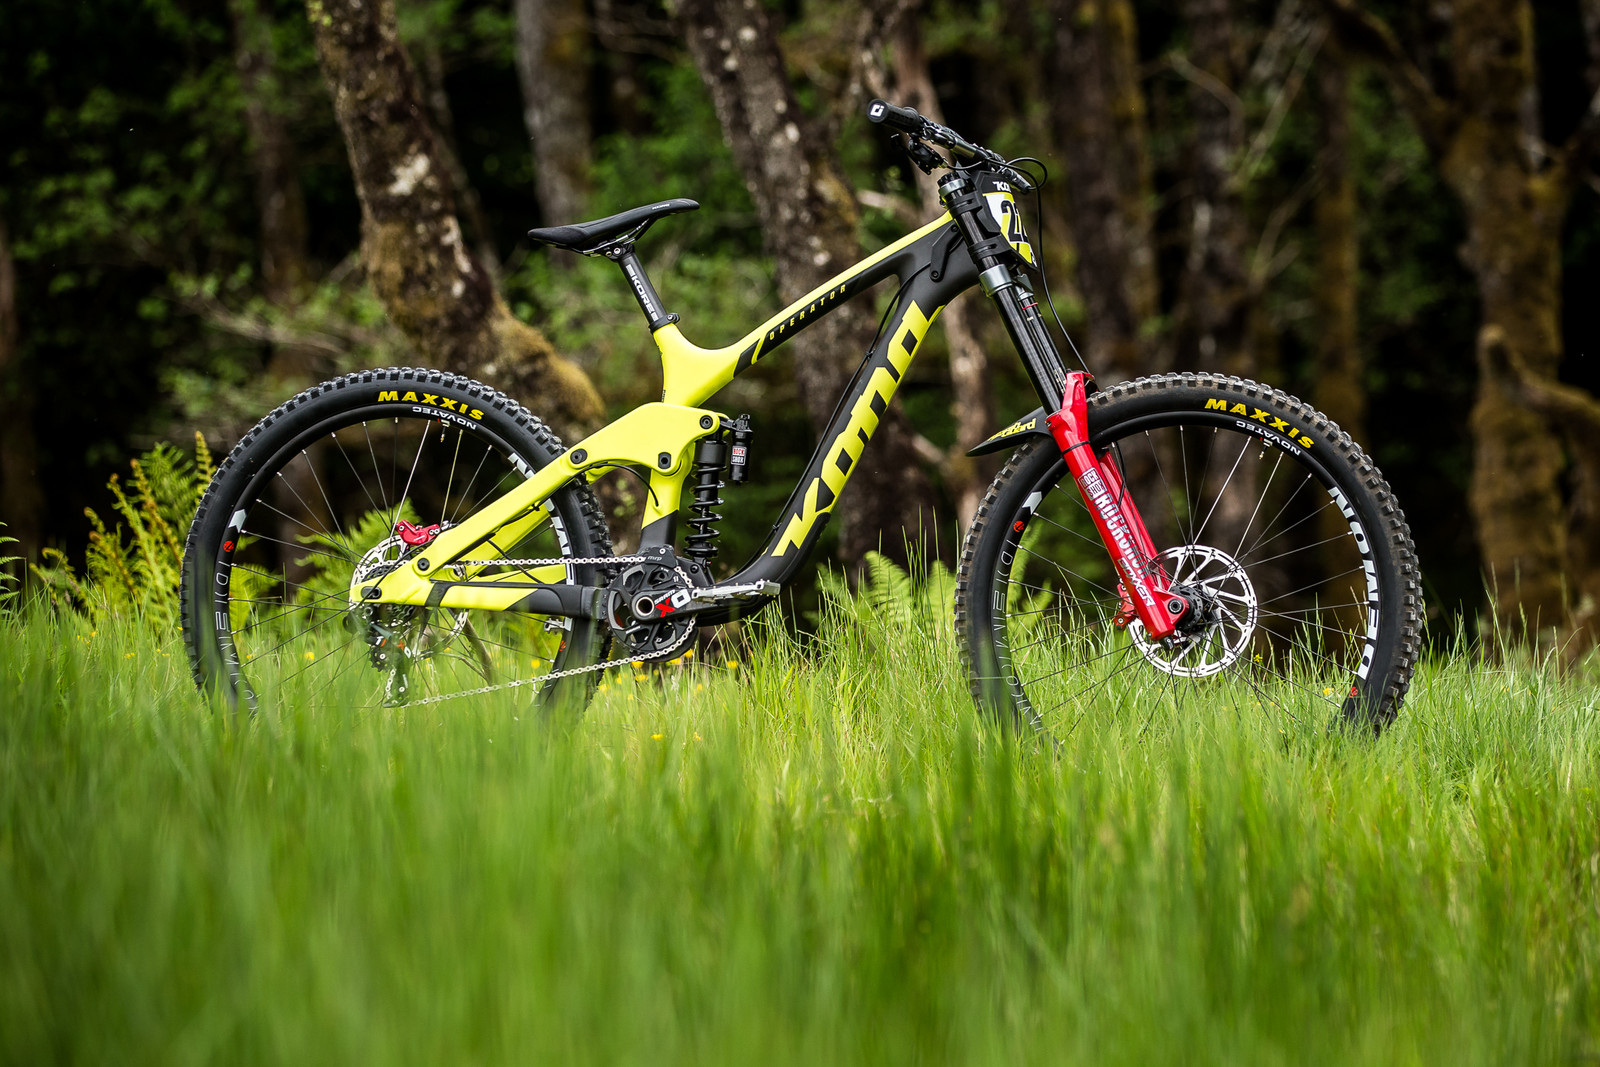 Connor Fearon's Kona Supreme Operator for Fort William - Connor Fearon's Kona Supreme Operator for Fort William - Mountain Biking Pictures - Vital MTB